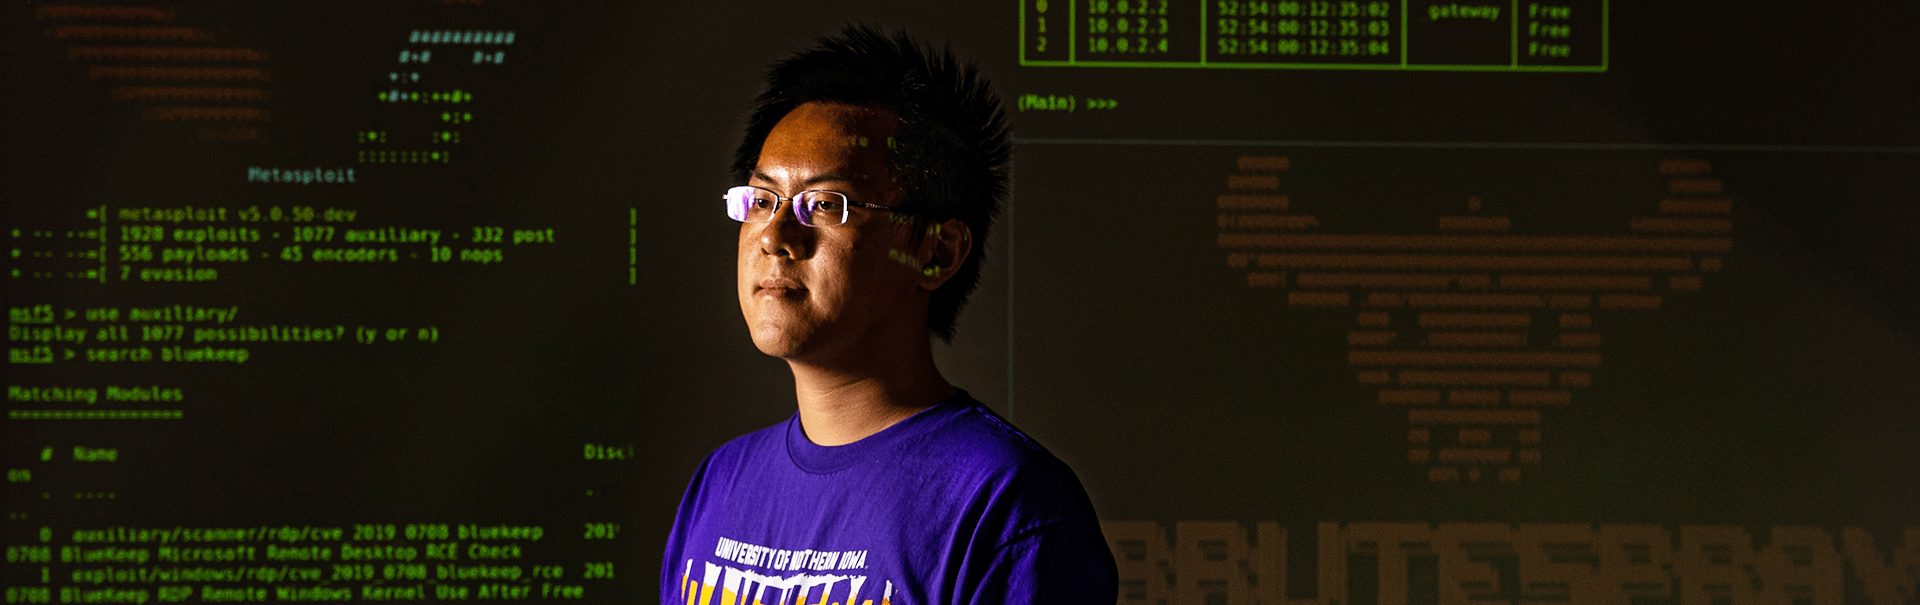 computer science student in front of a wall of code